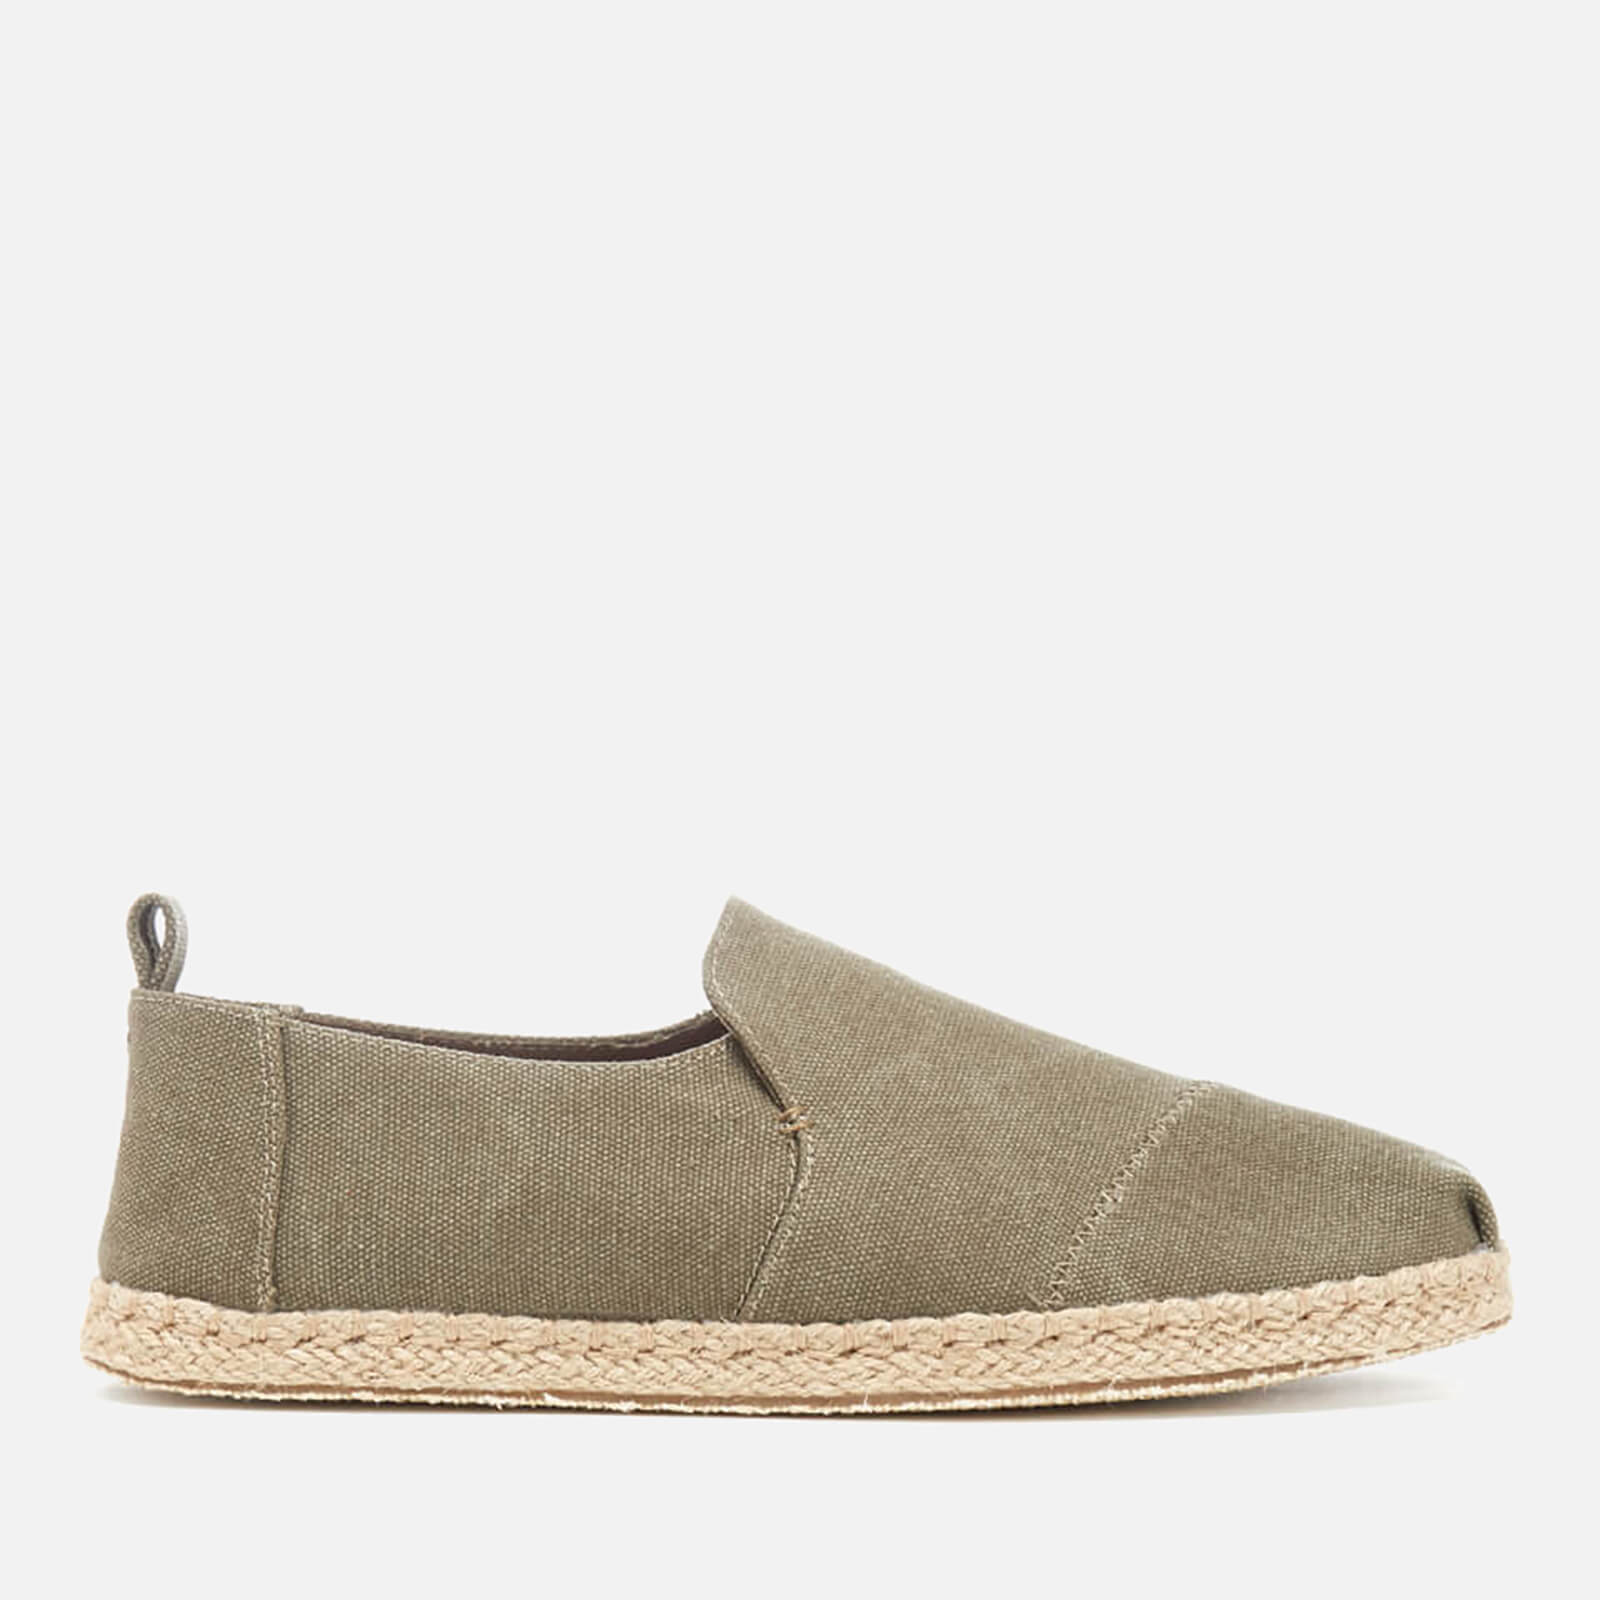 c32fd45a989 TOMS Men s Deconstructed Alpargata Espadrille Slip-On Pumps - Olive ...